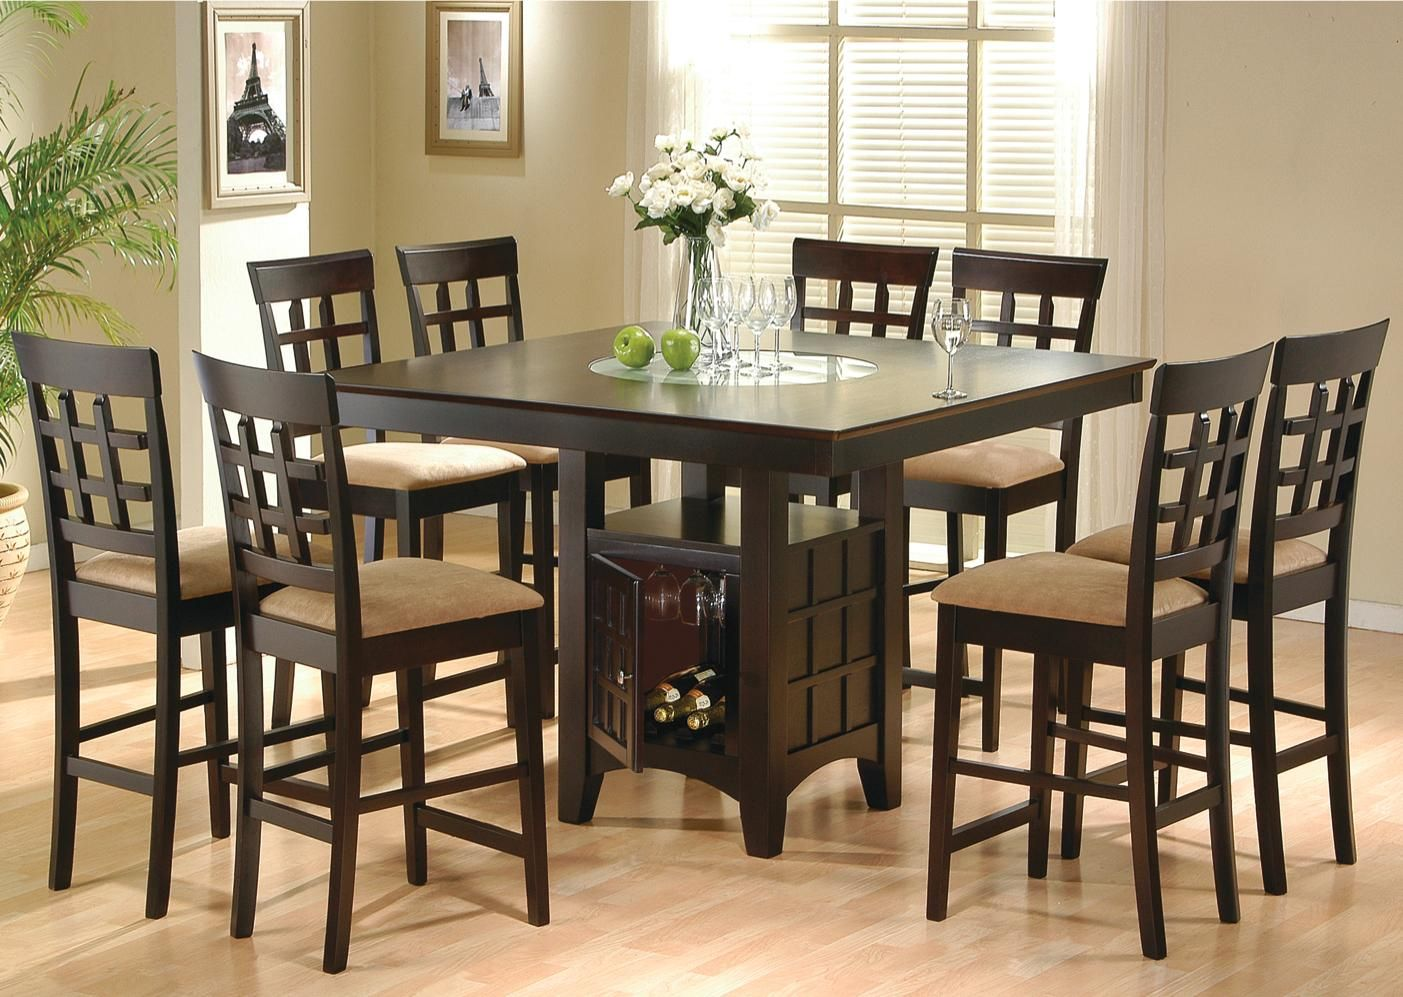 Coaster Hyde Counter Height Square Dining Table With Storage Base In CappuccinoTable Only The Sq Features A Built Frosted Glass Lazy